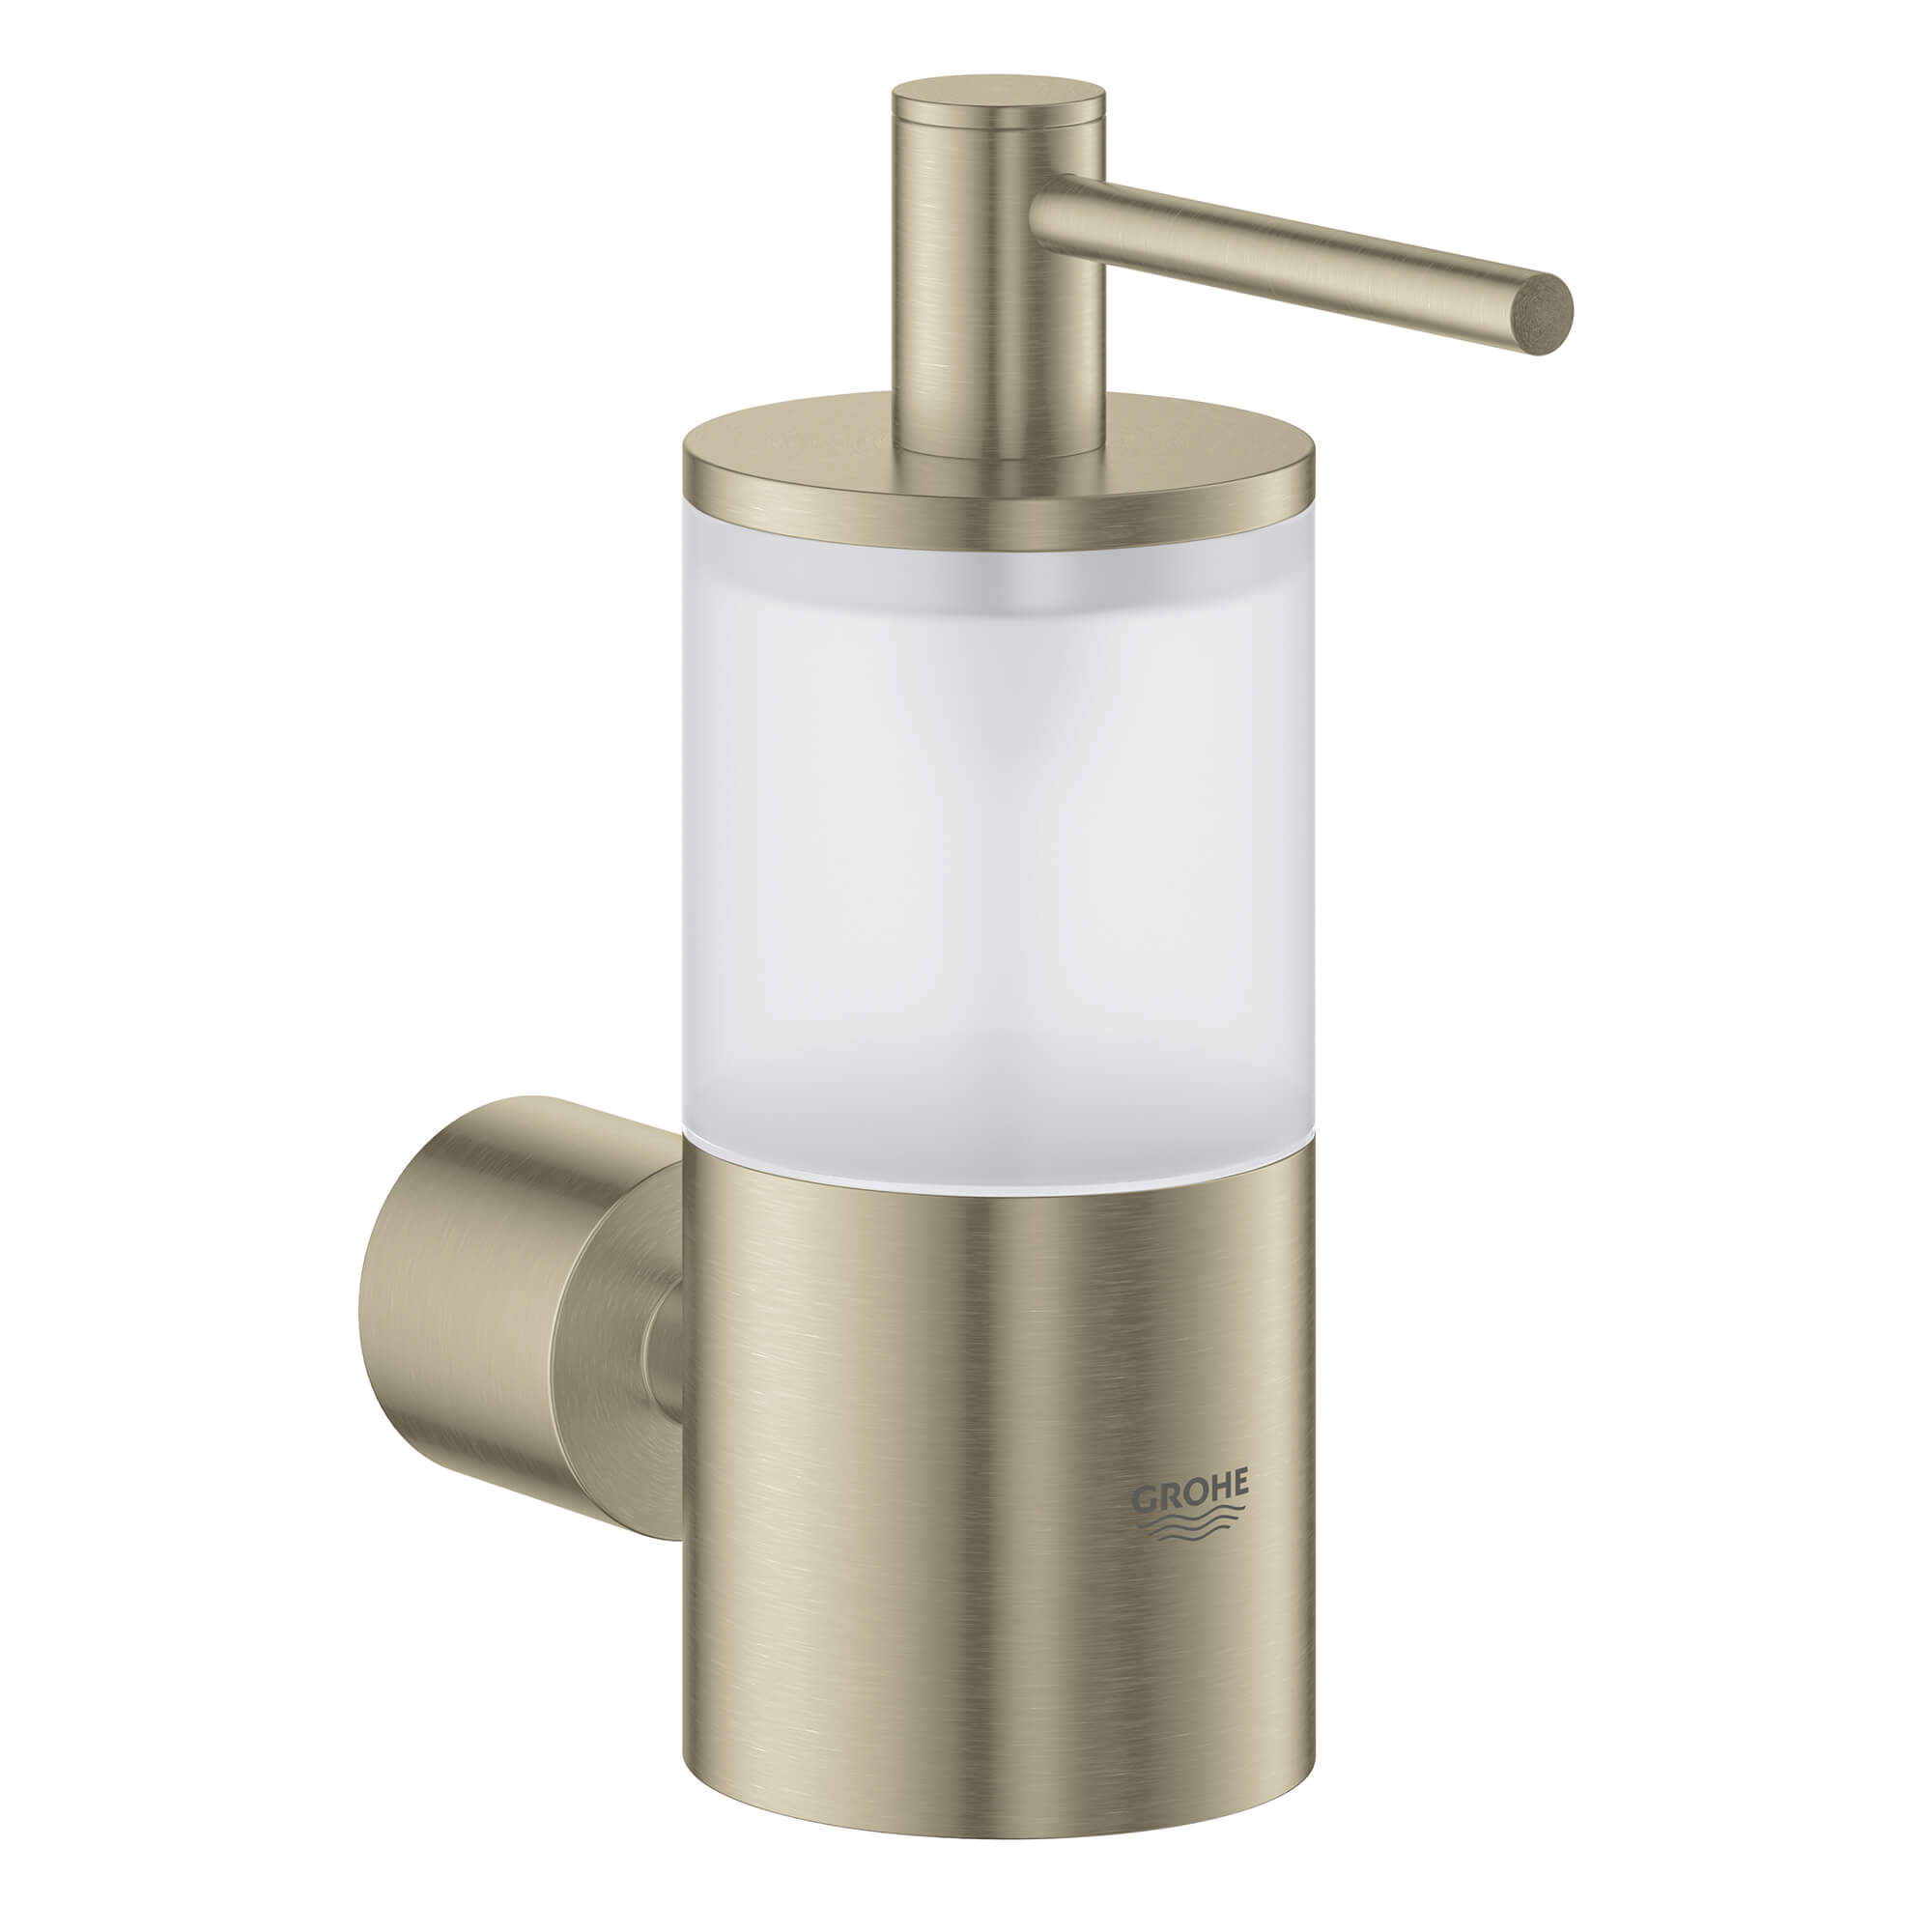 Holder For Glass Soap Dish Or Soap Dispenser GROHE BRUSHED NICKEL